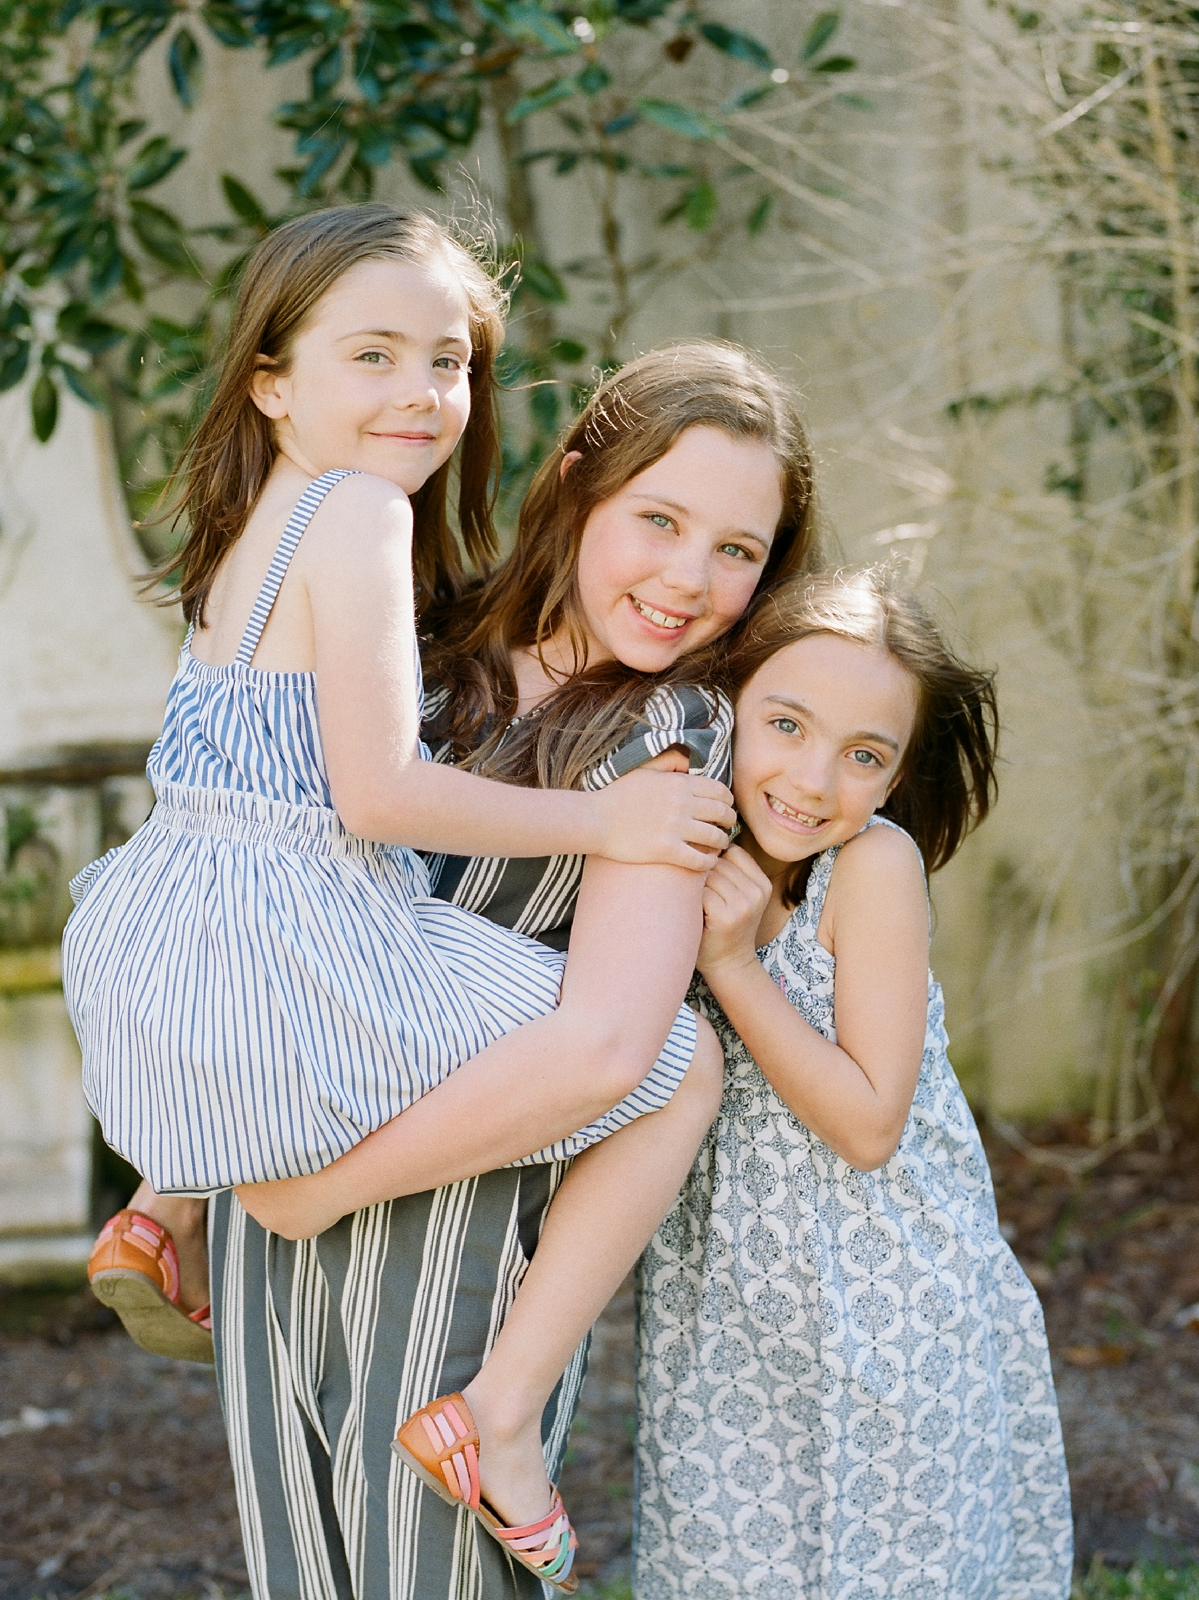 sea_island_family_photographer_sea_island_georgia_ogilvie_shannon_griffin_0003.jpg